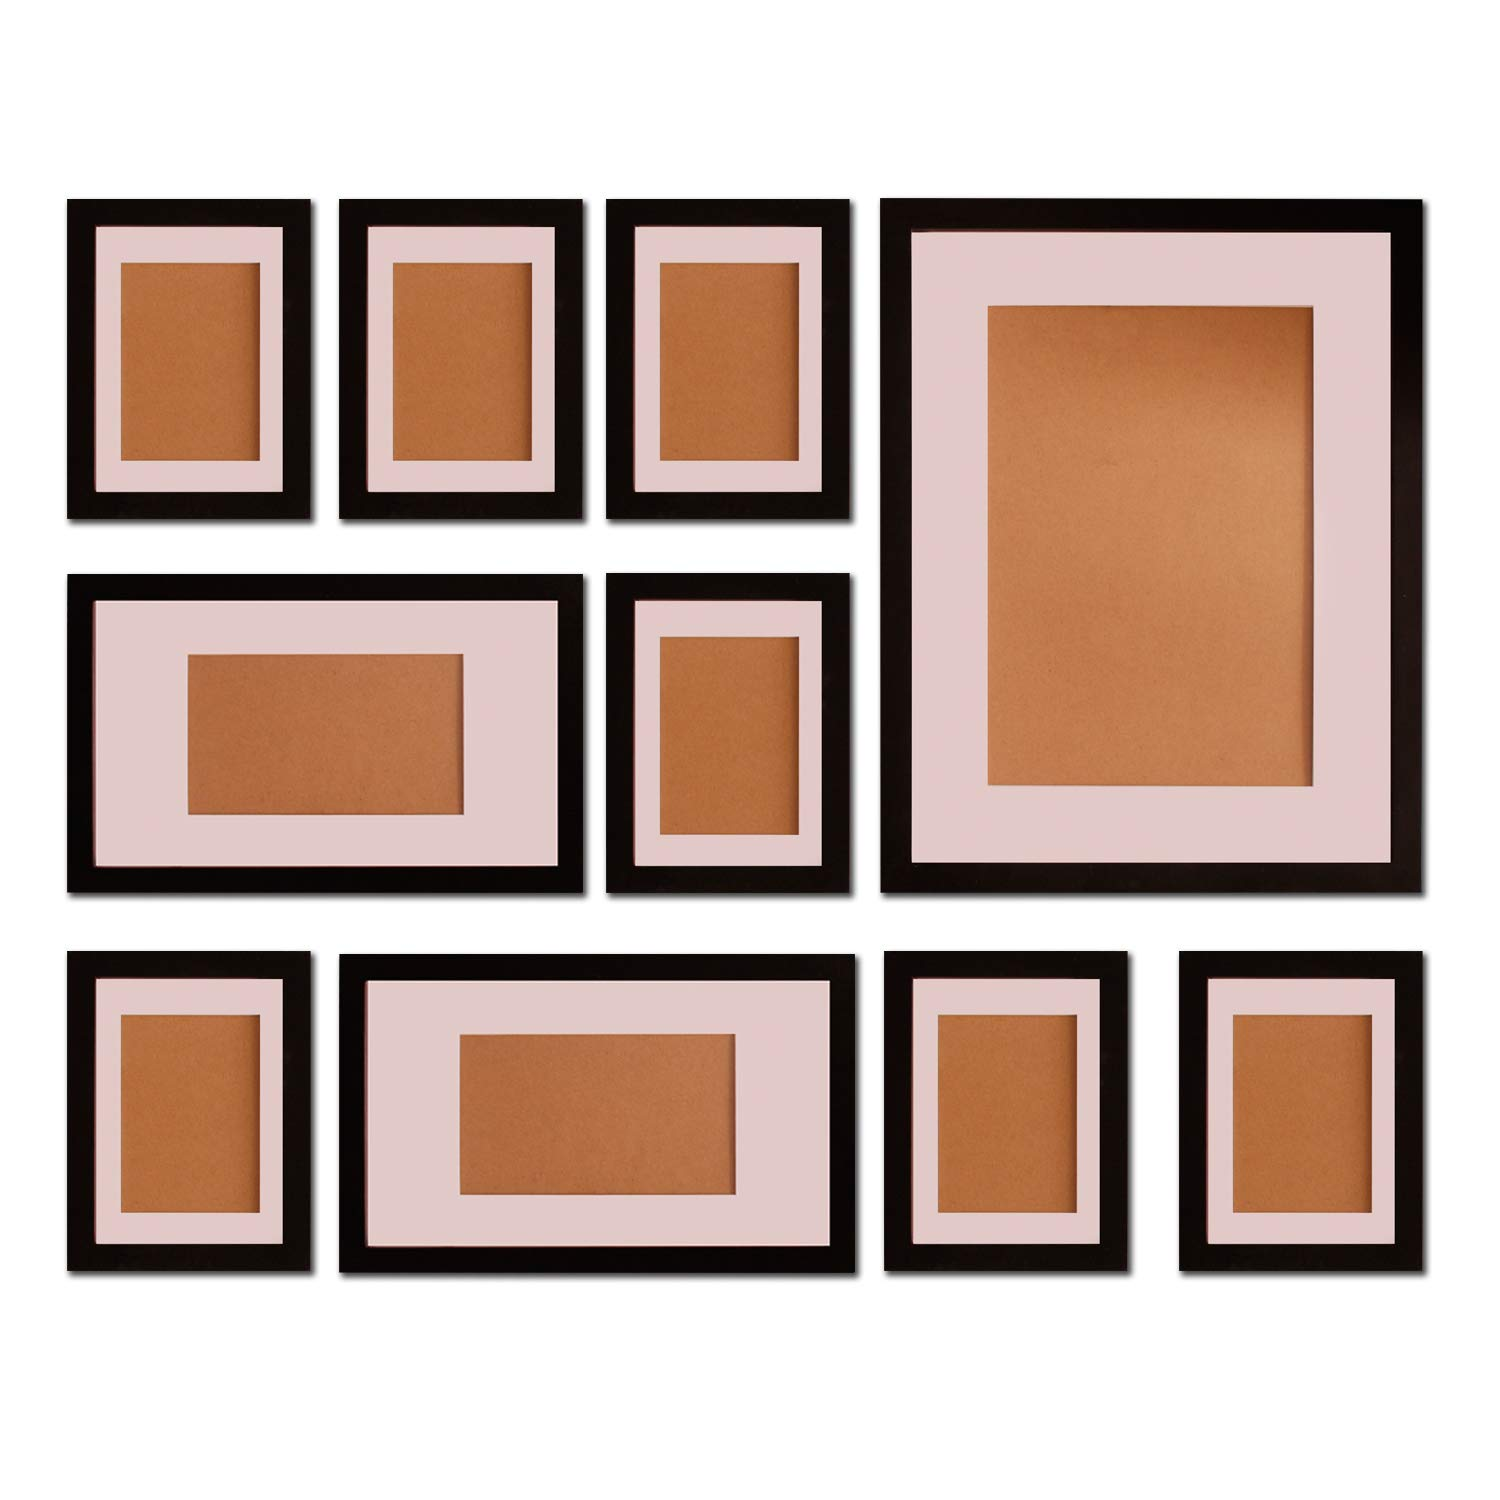 FUNTRESS 10 Pieces Gallery Wall Photo Frames Set for Wall 16'' 12'' 7'' Size Wooden Combination Pictures Frames Baby Room Living Room with Mats(Black) by FUNTRESS